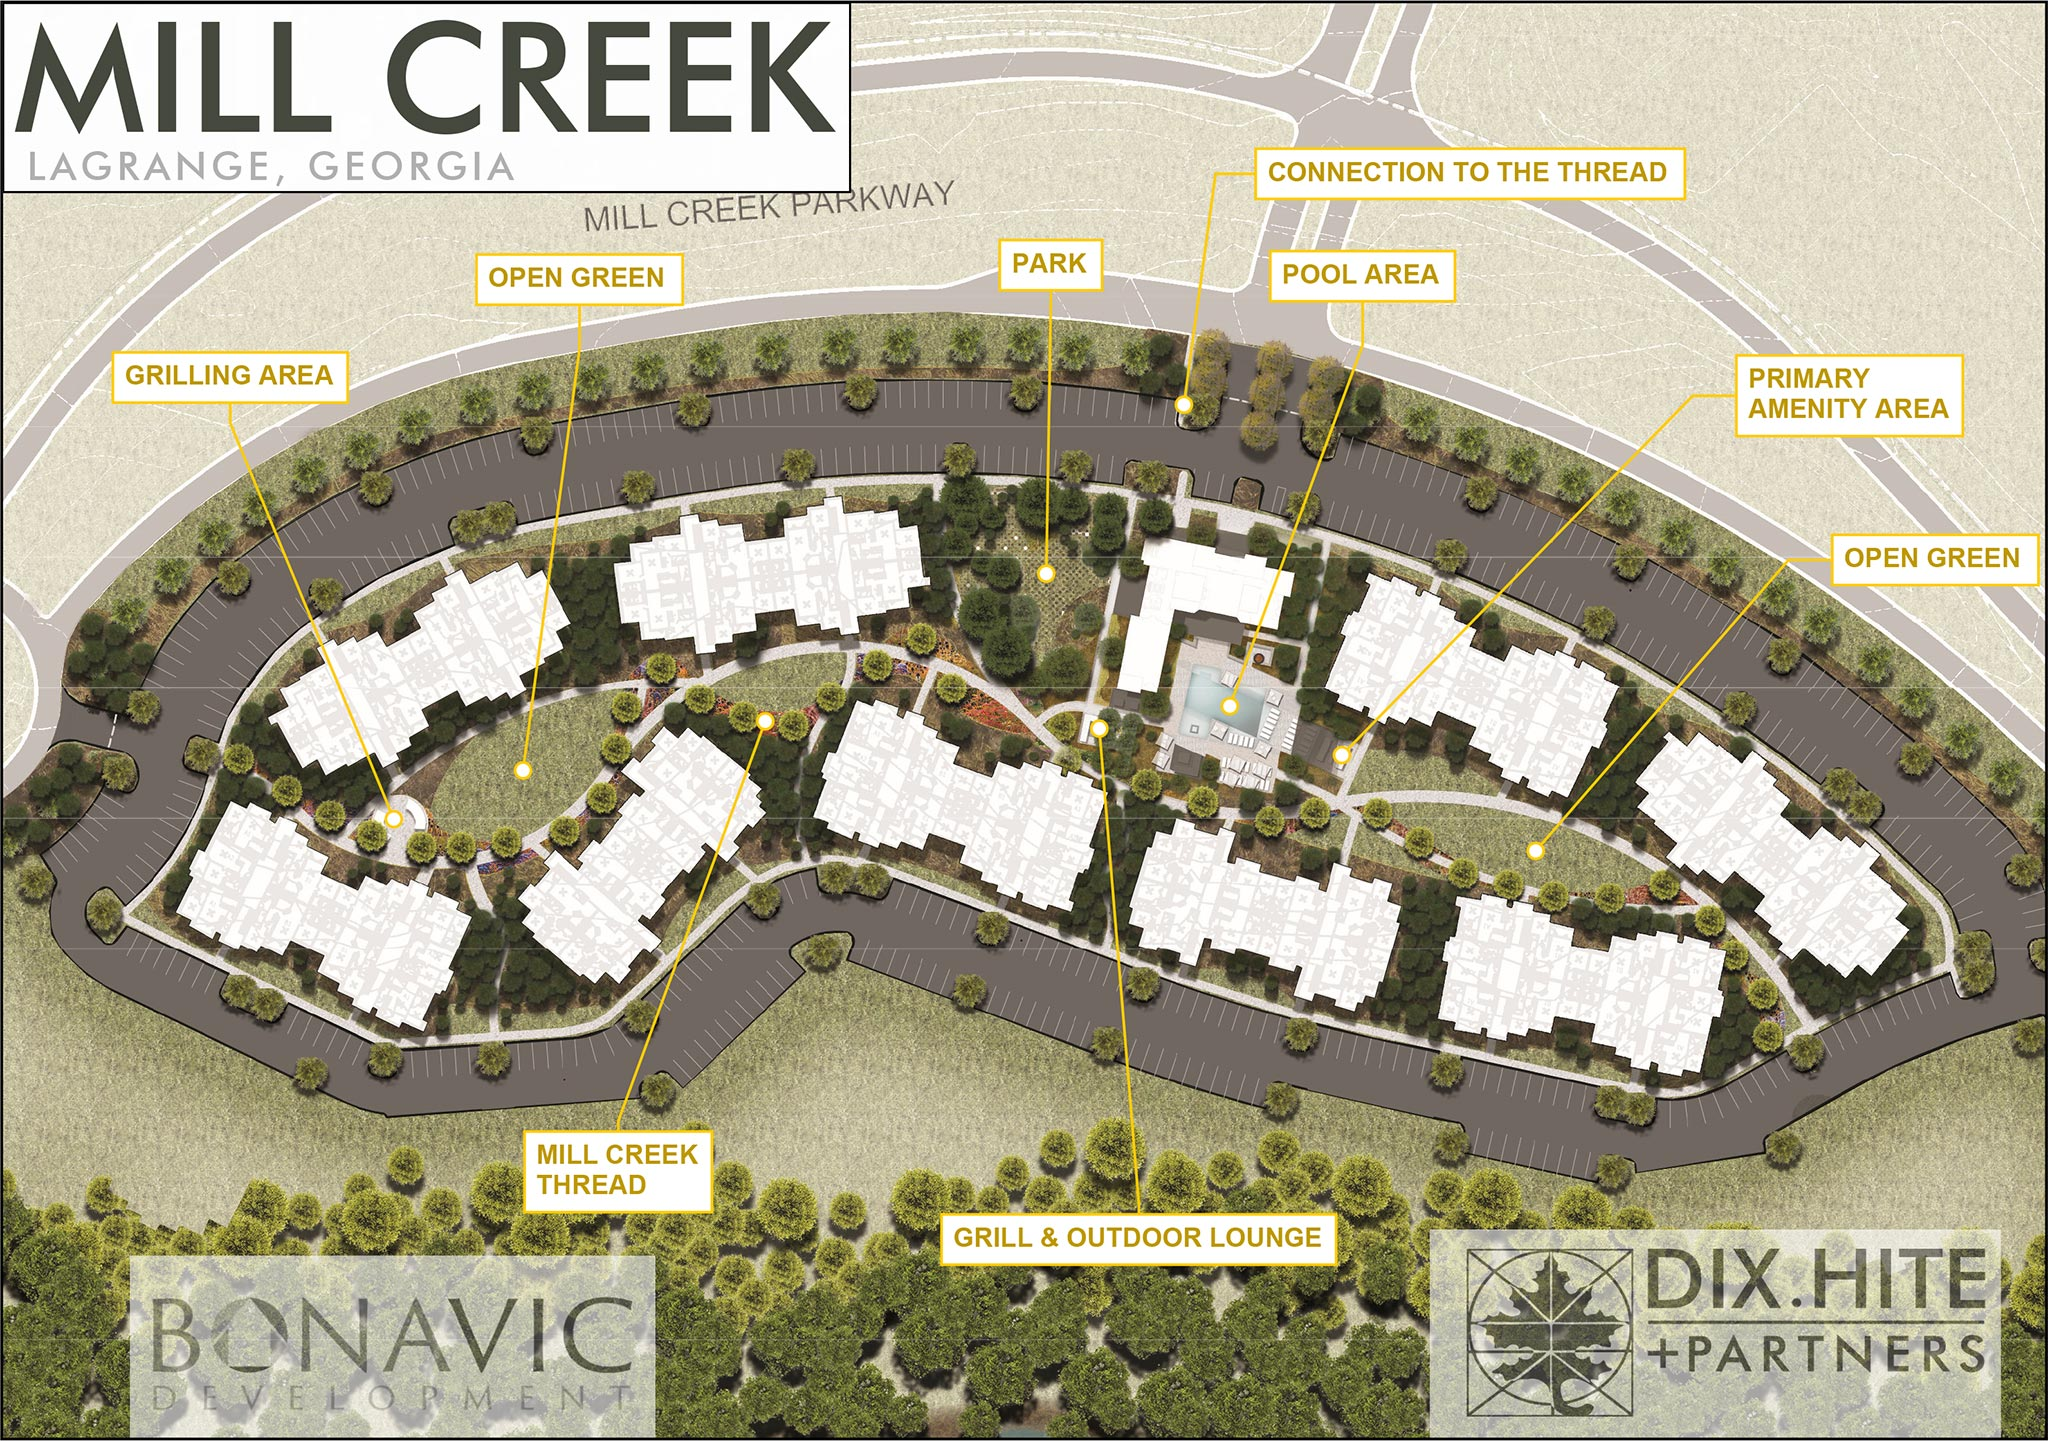 image of the site plan for Mill Creek at LaGrange, Georgia